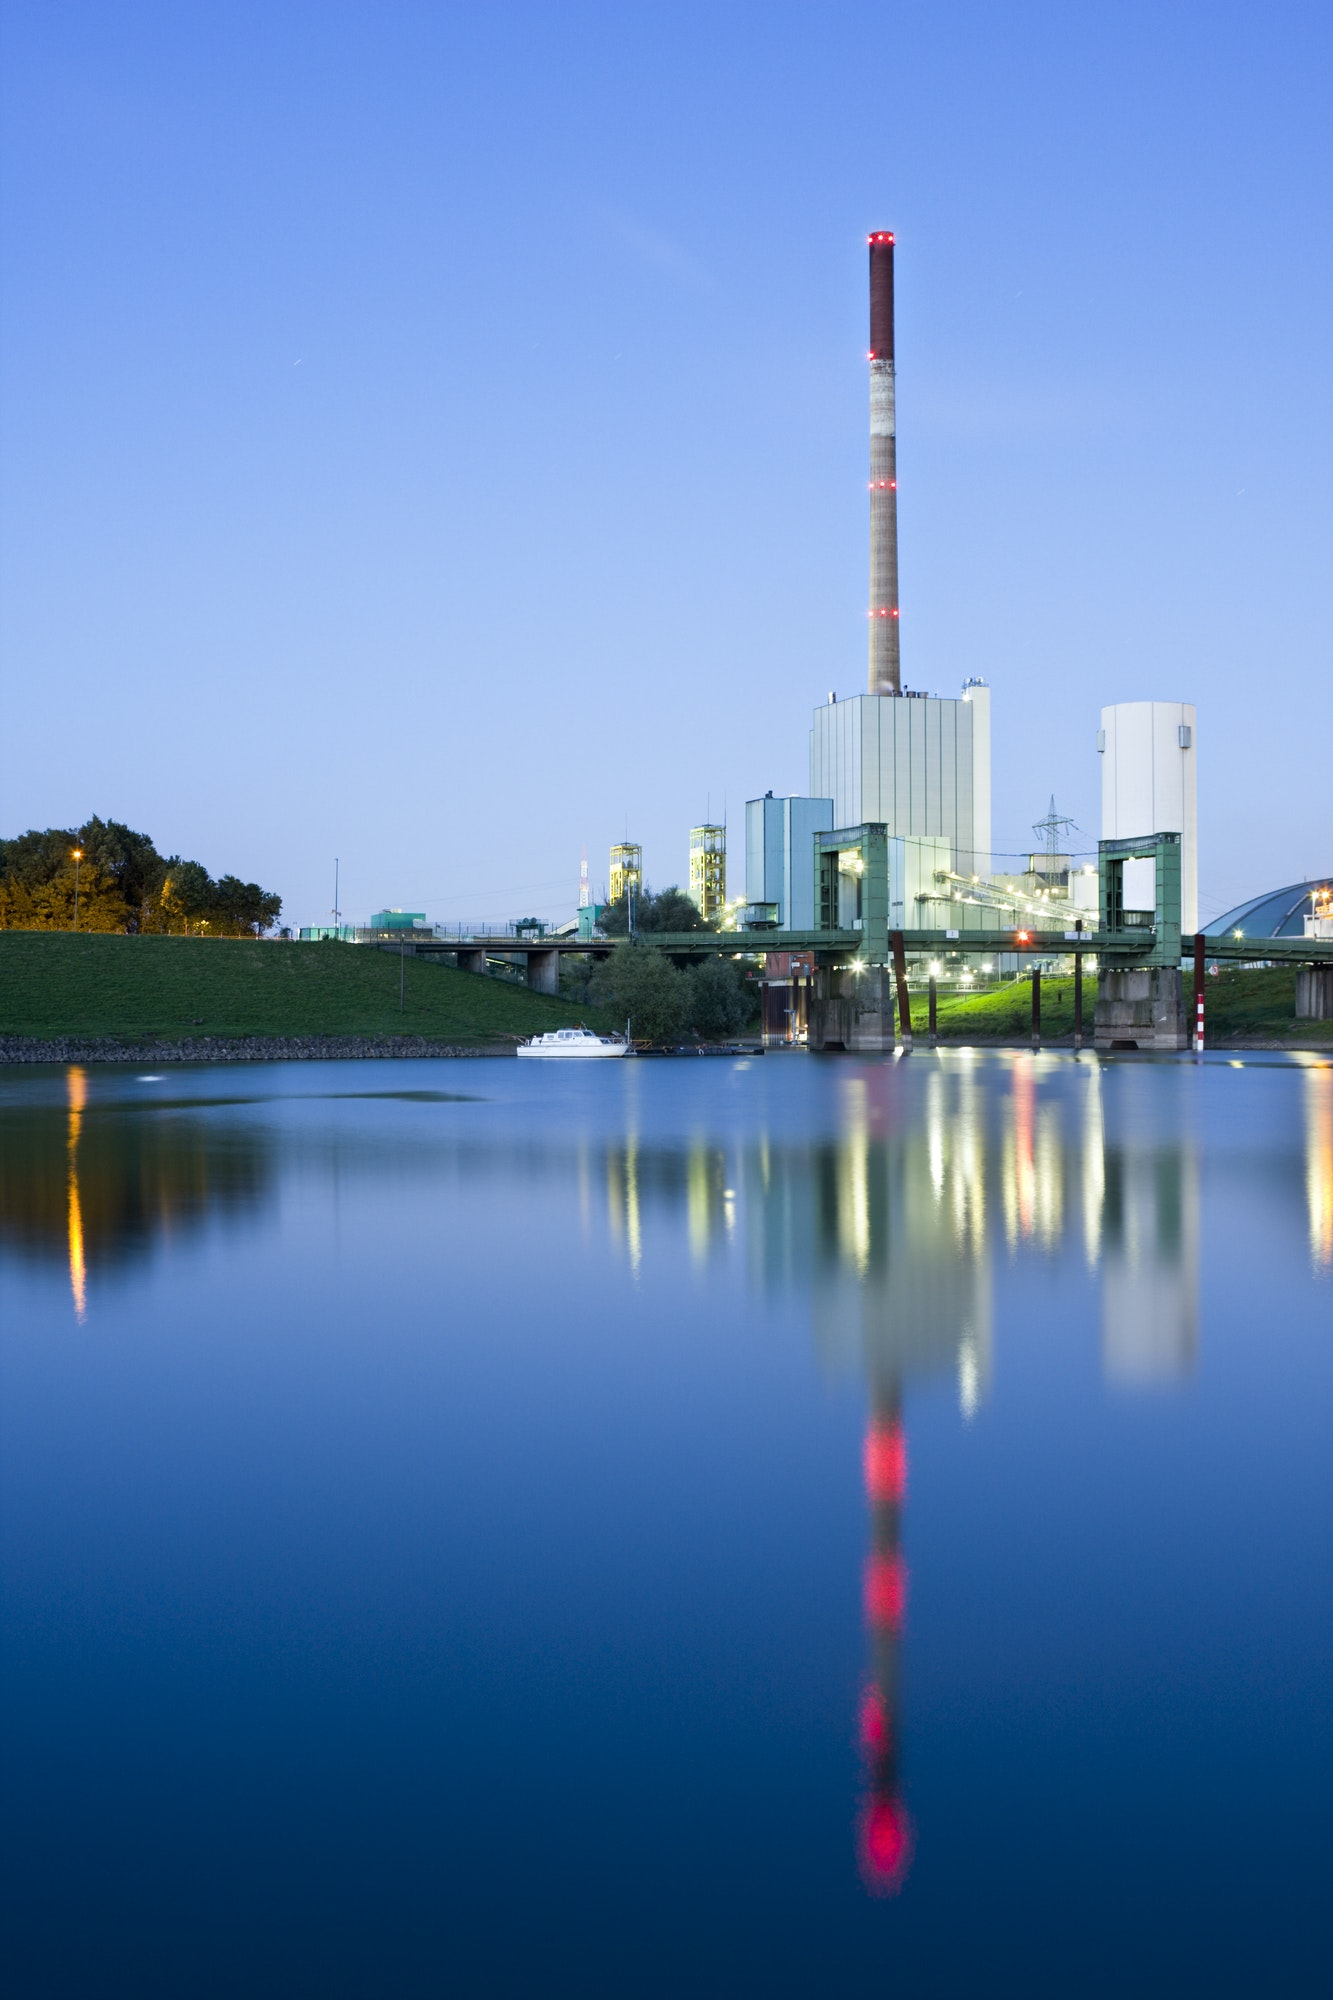 Combined Heat And Power Plant With Reflection